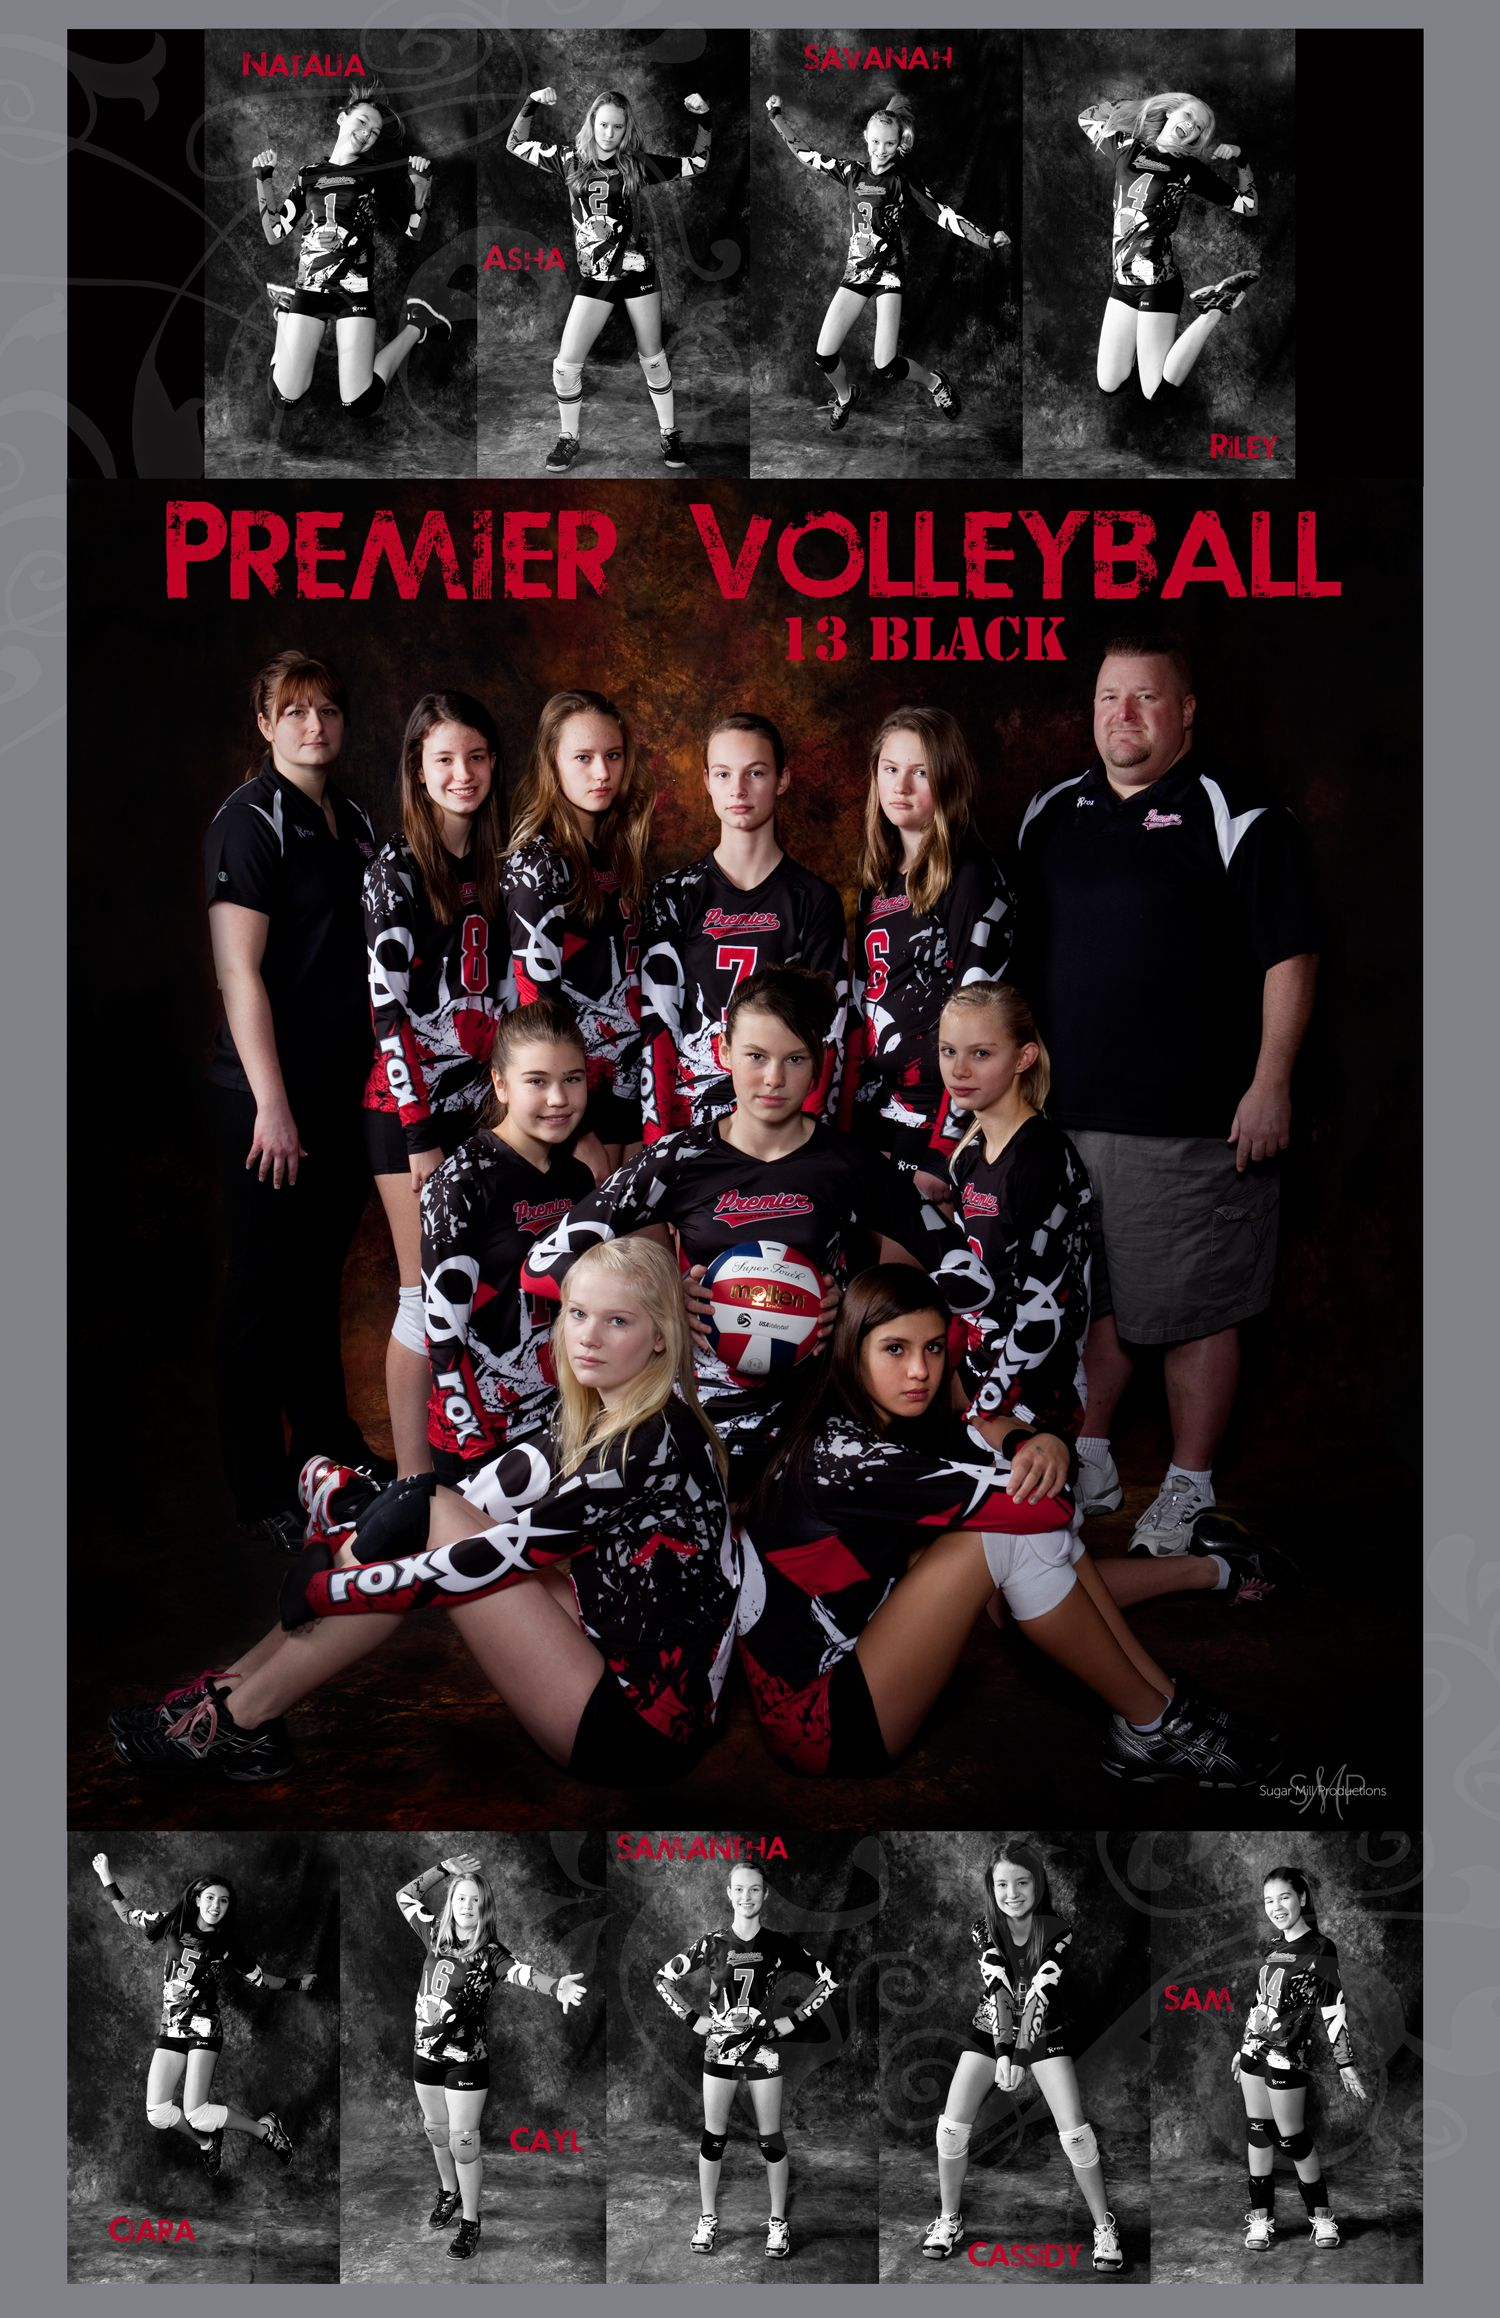 Team Poster I Love Doing Sports Posters Especially For These Fierce Girls Volleyball Team Pictures Volleyball Posters Volleyball Photos